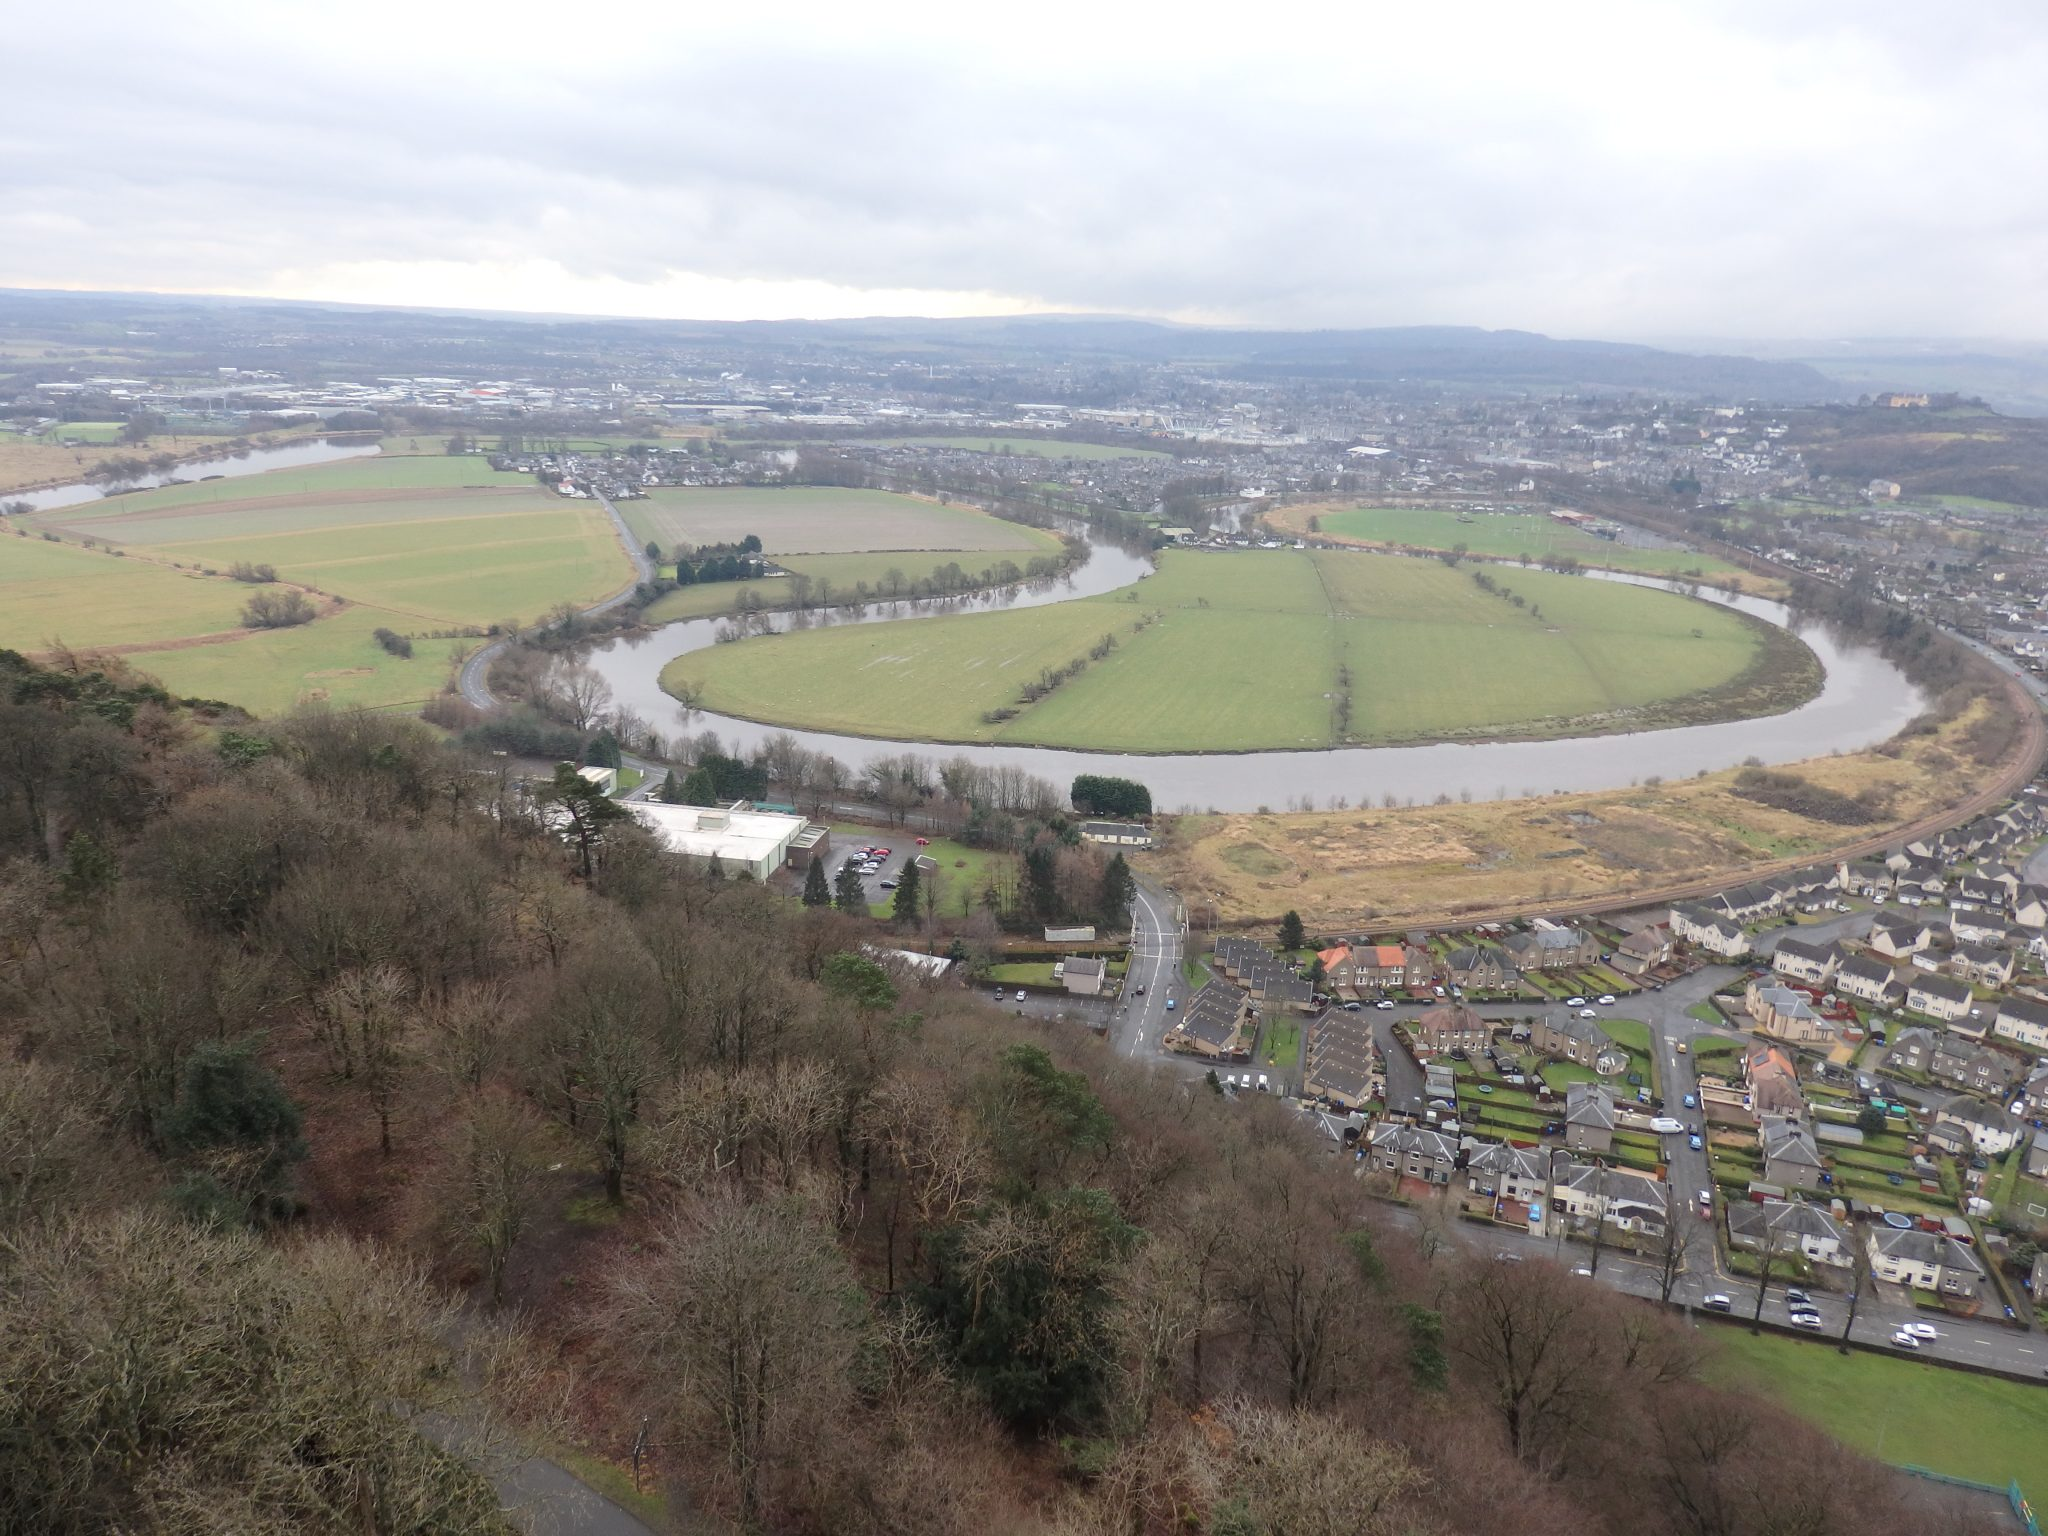 The River Forth meanders through the valley: The Wallace Memorial and a travel blogger's heart